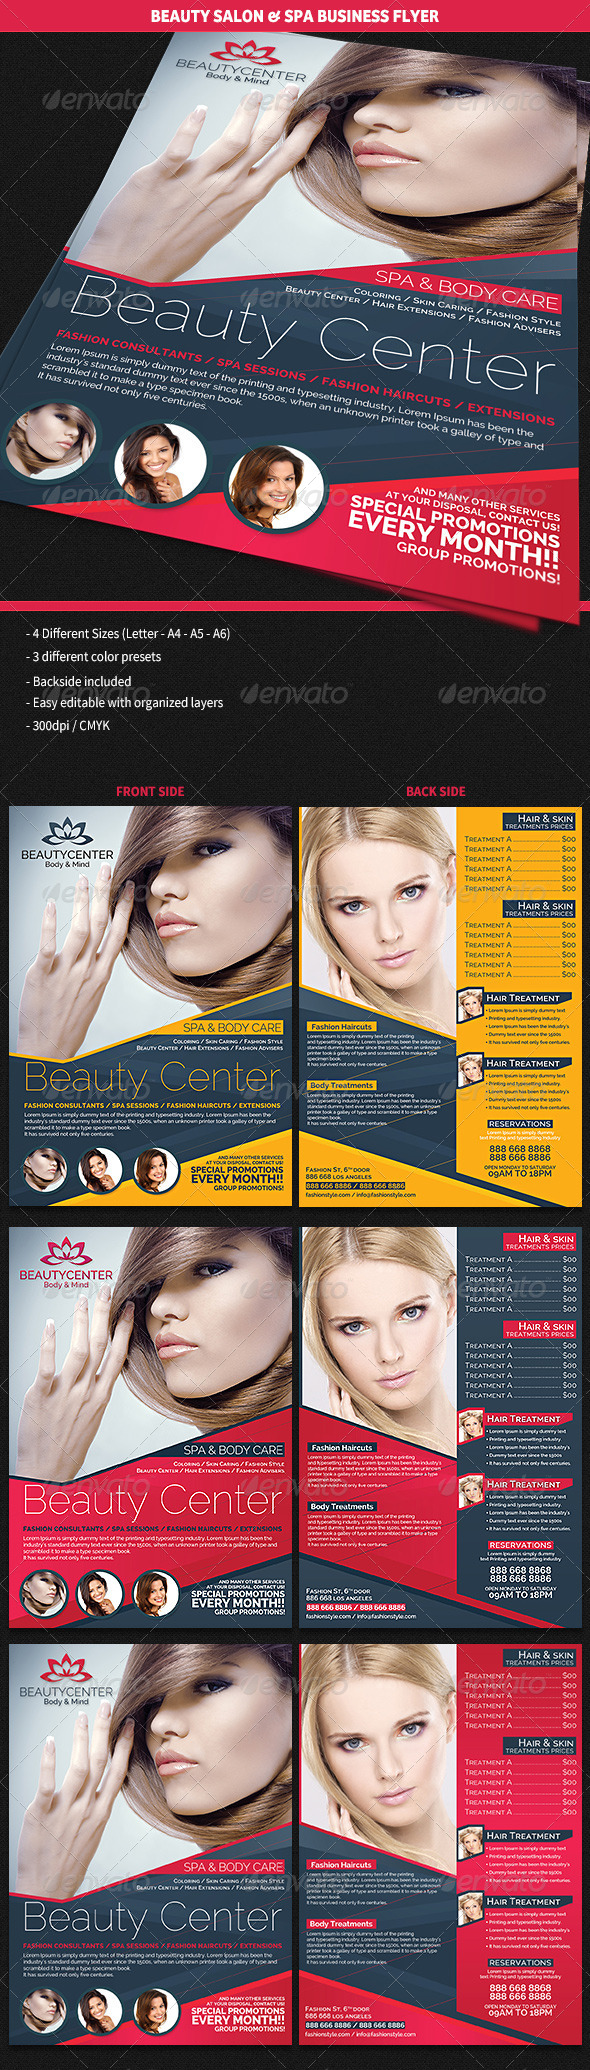 Beauty Center & Spa Business Flyer - Corporate Flyers